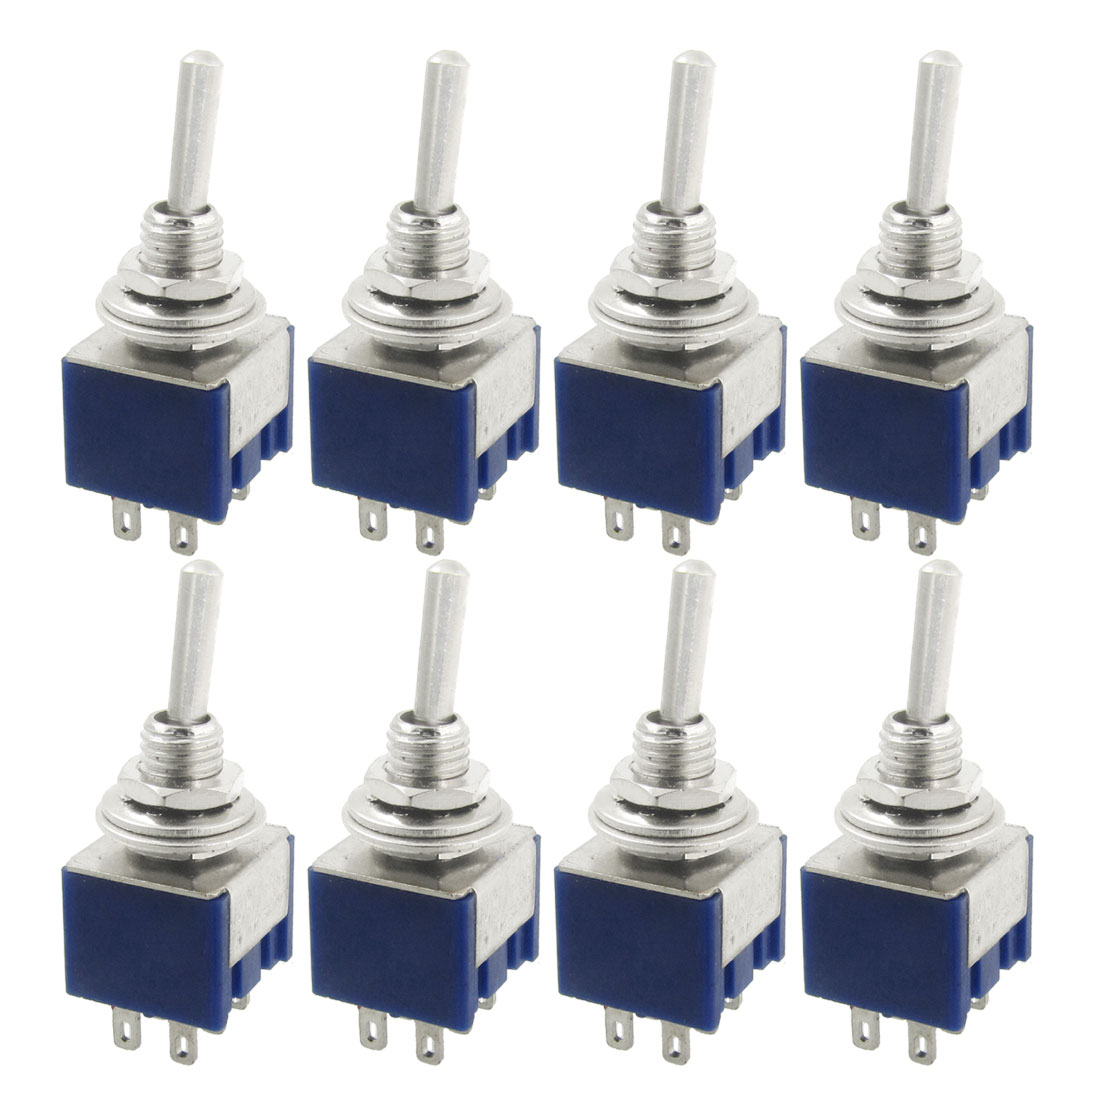 Unique Bargains Unique Bargains 8 Pcs AC 125V 6A Amps ON/ON 2 Position DPDT 6 Pins Toggle Switch